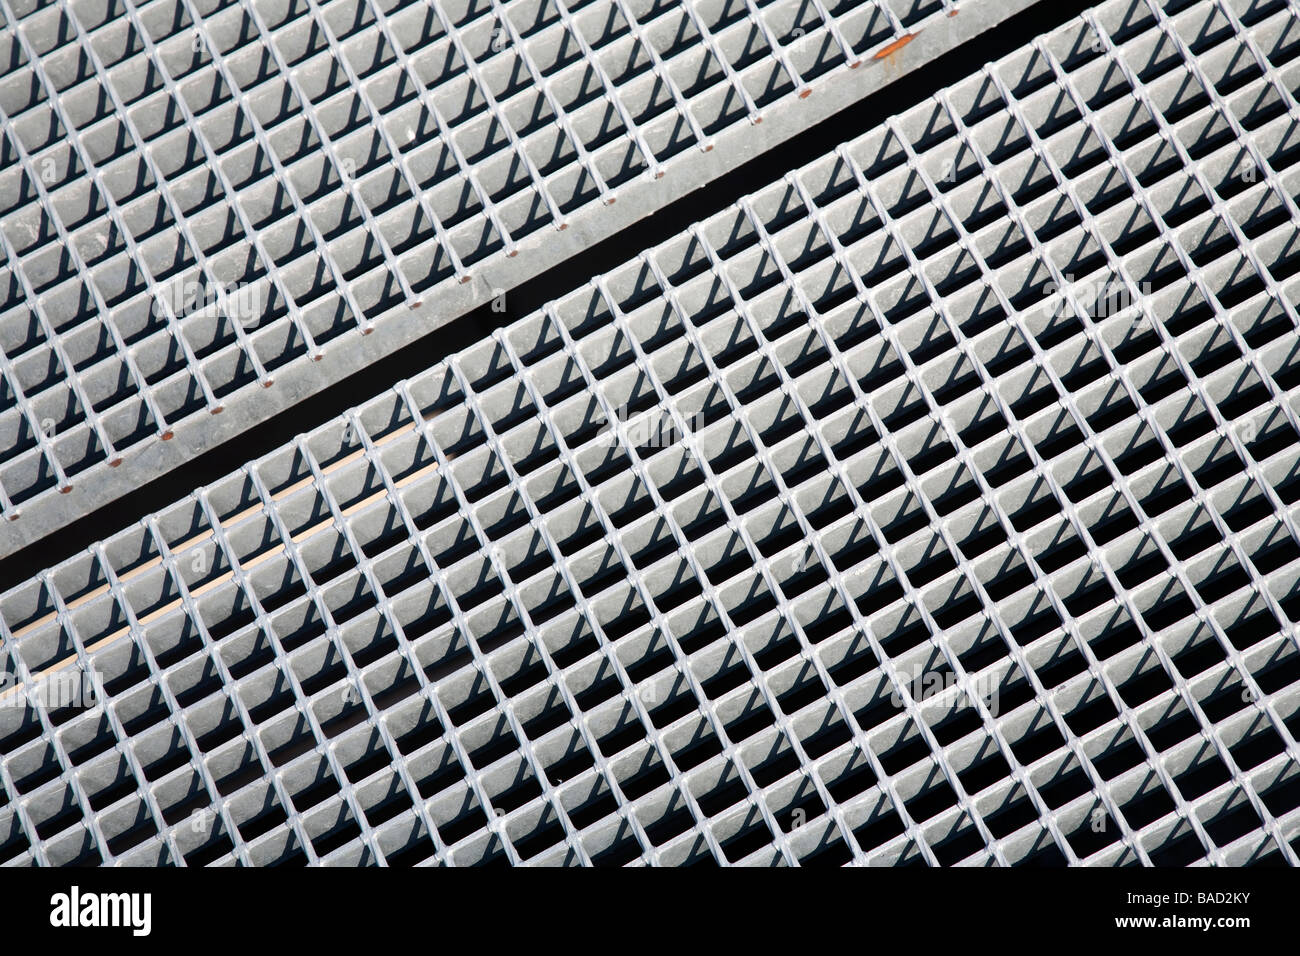 Metal floor grating Stock Photo, Royalty Free Image ...